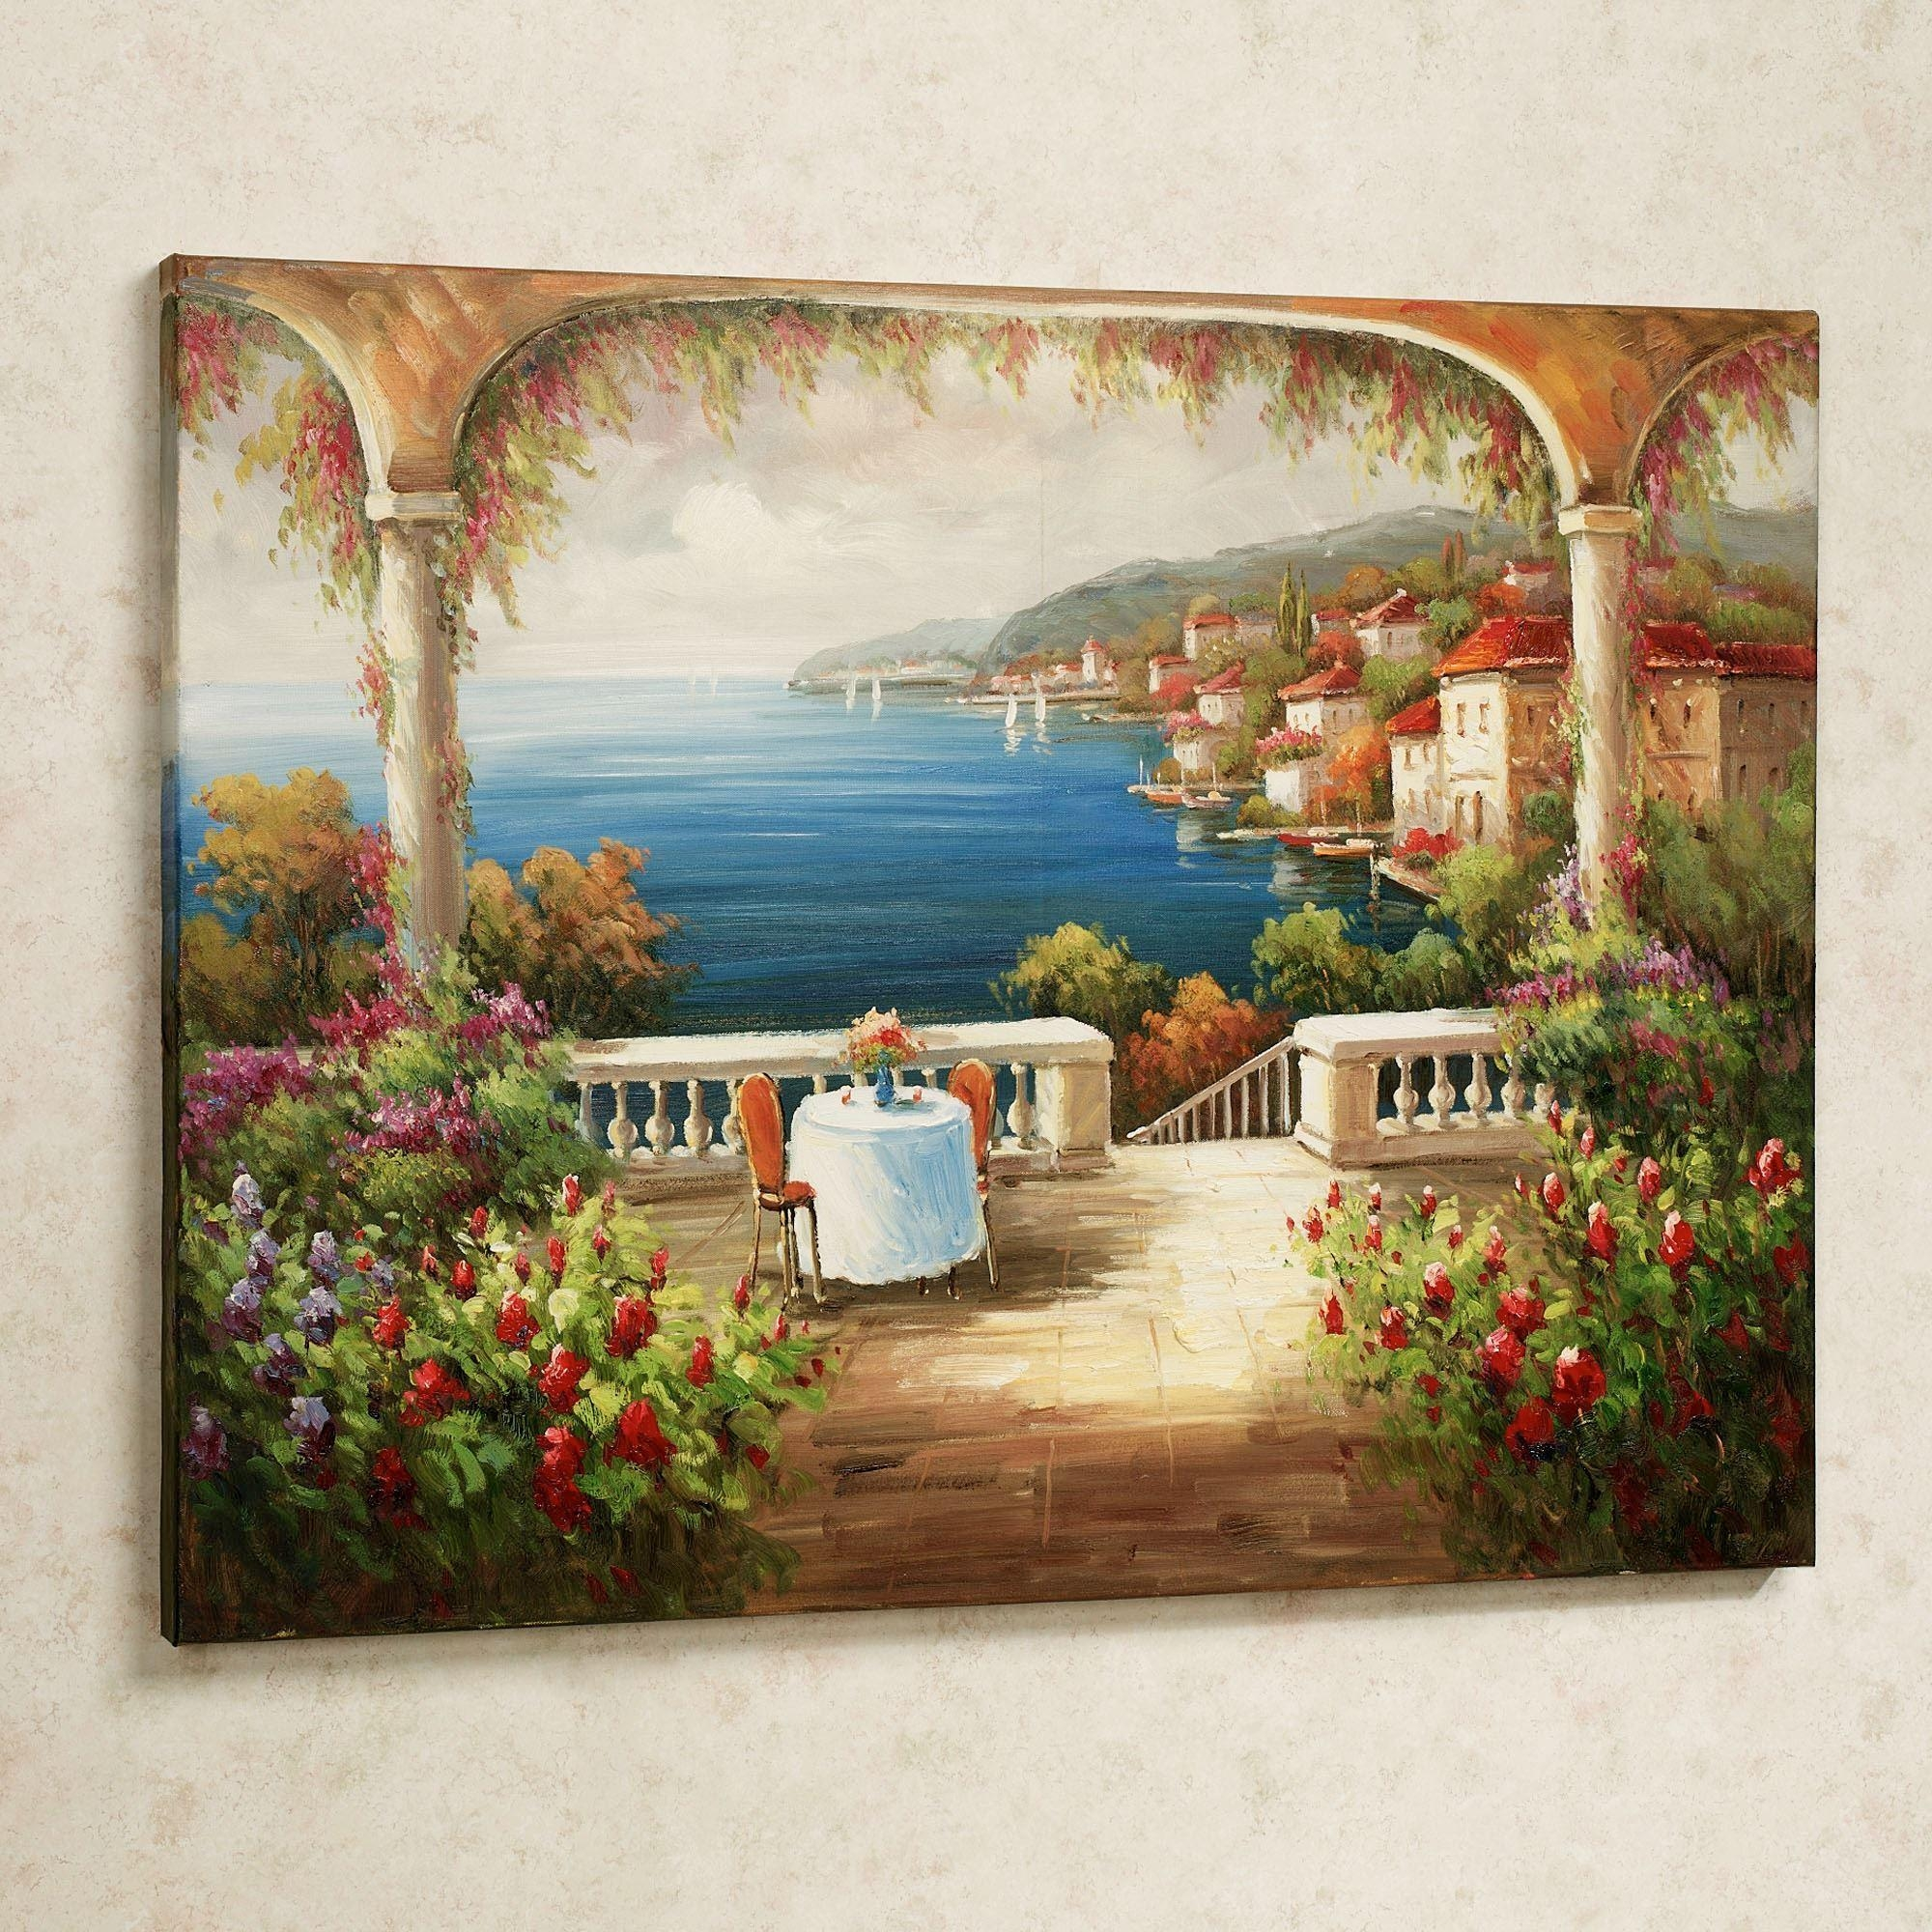 Kitchen : Canvas Prints Wall Art Decor For Living Room Large Within Large Italian Wall Art (View 6 of 20)